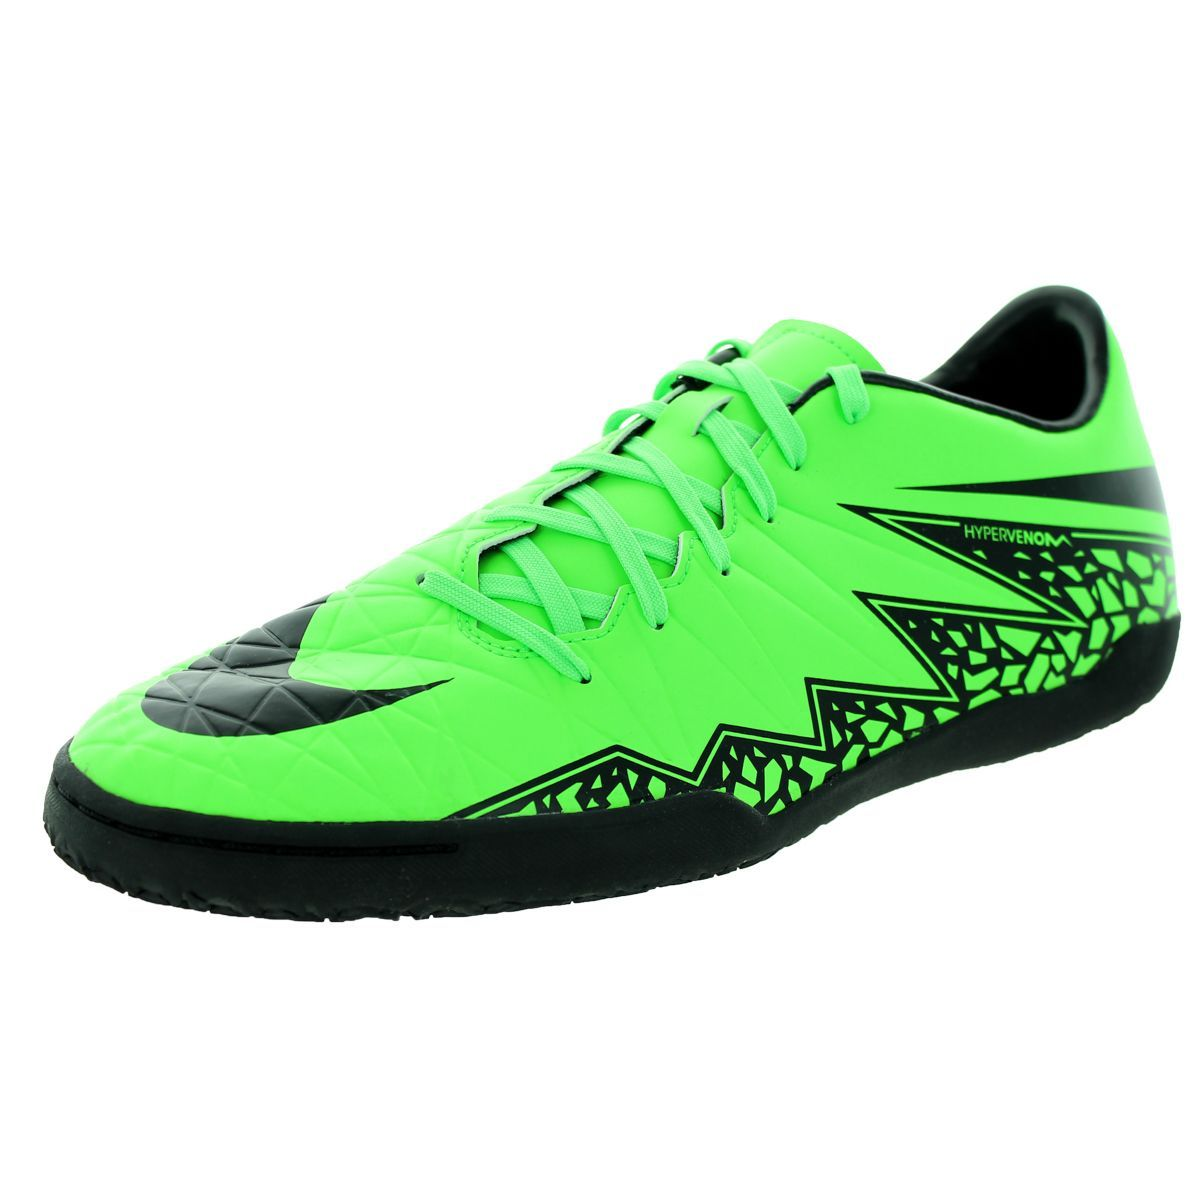 314265a3437093 Nike Kids Hypervenom Phelon Indoor Soccer Shoes White Black-Total ...